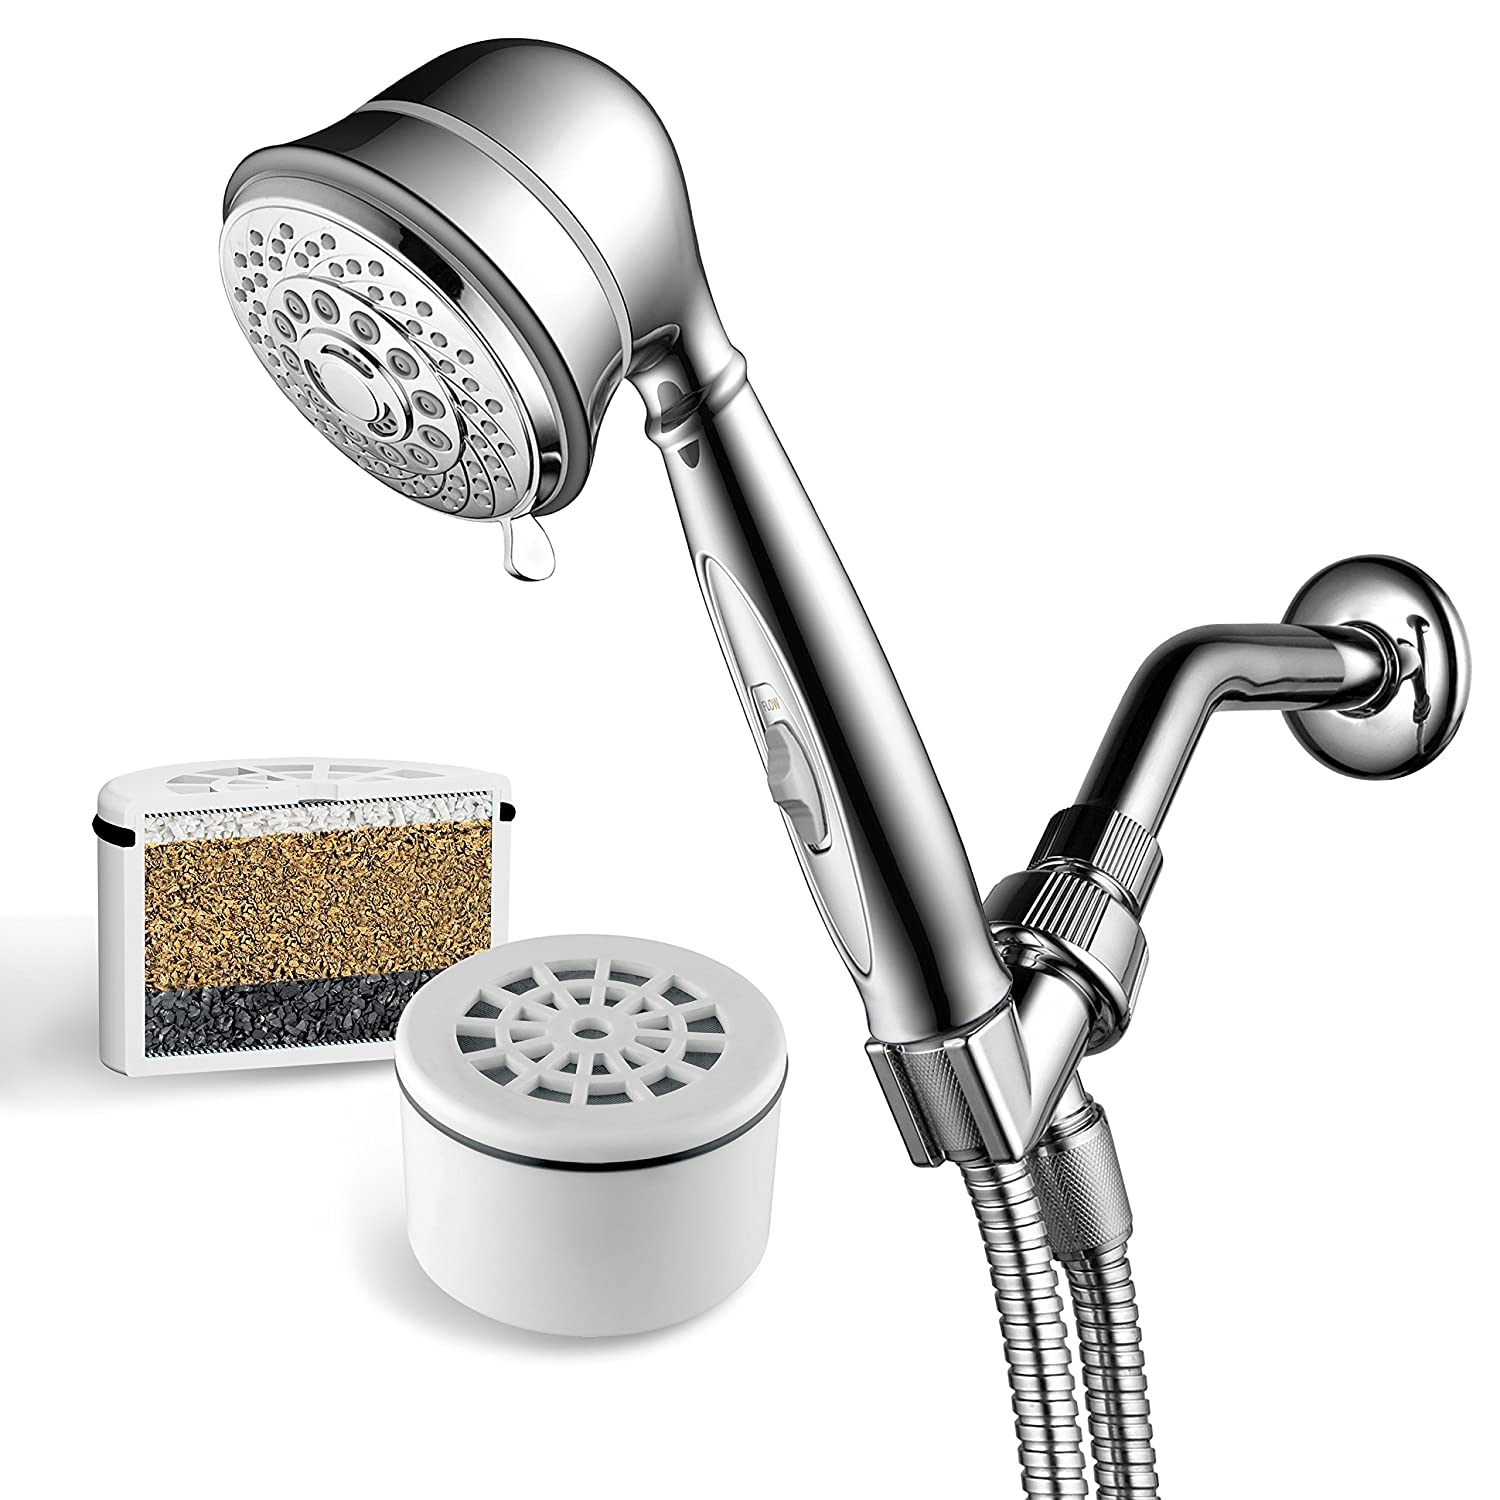 HotelSpa 7-Setting Filtered Hand Shower with Pause - - Amazon.com